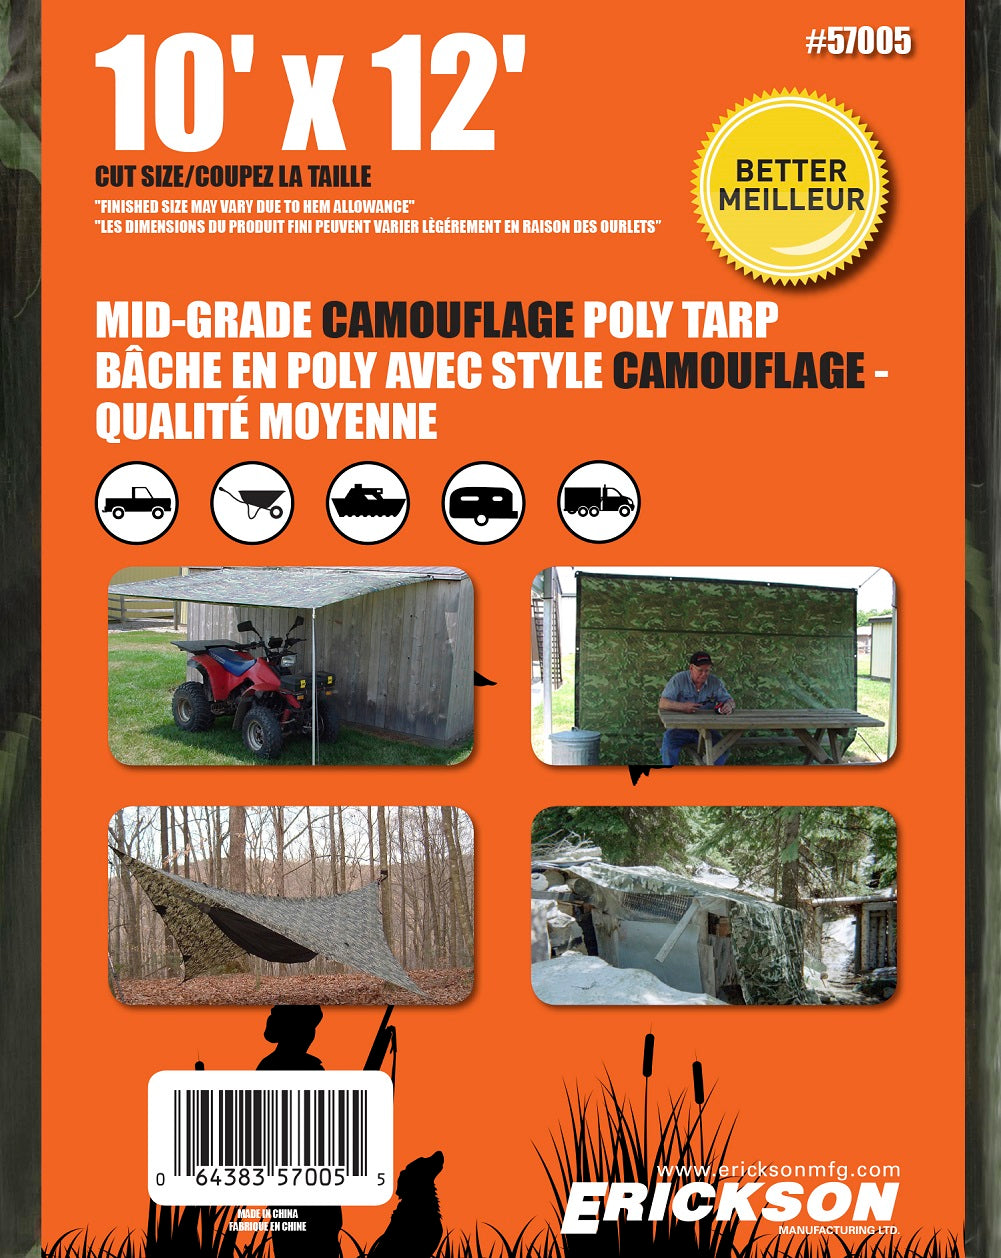 10 x 12 Medium-Duty Poly Tarp Camouflage